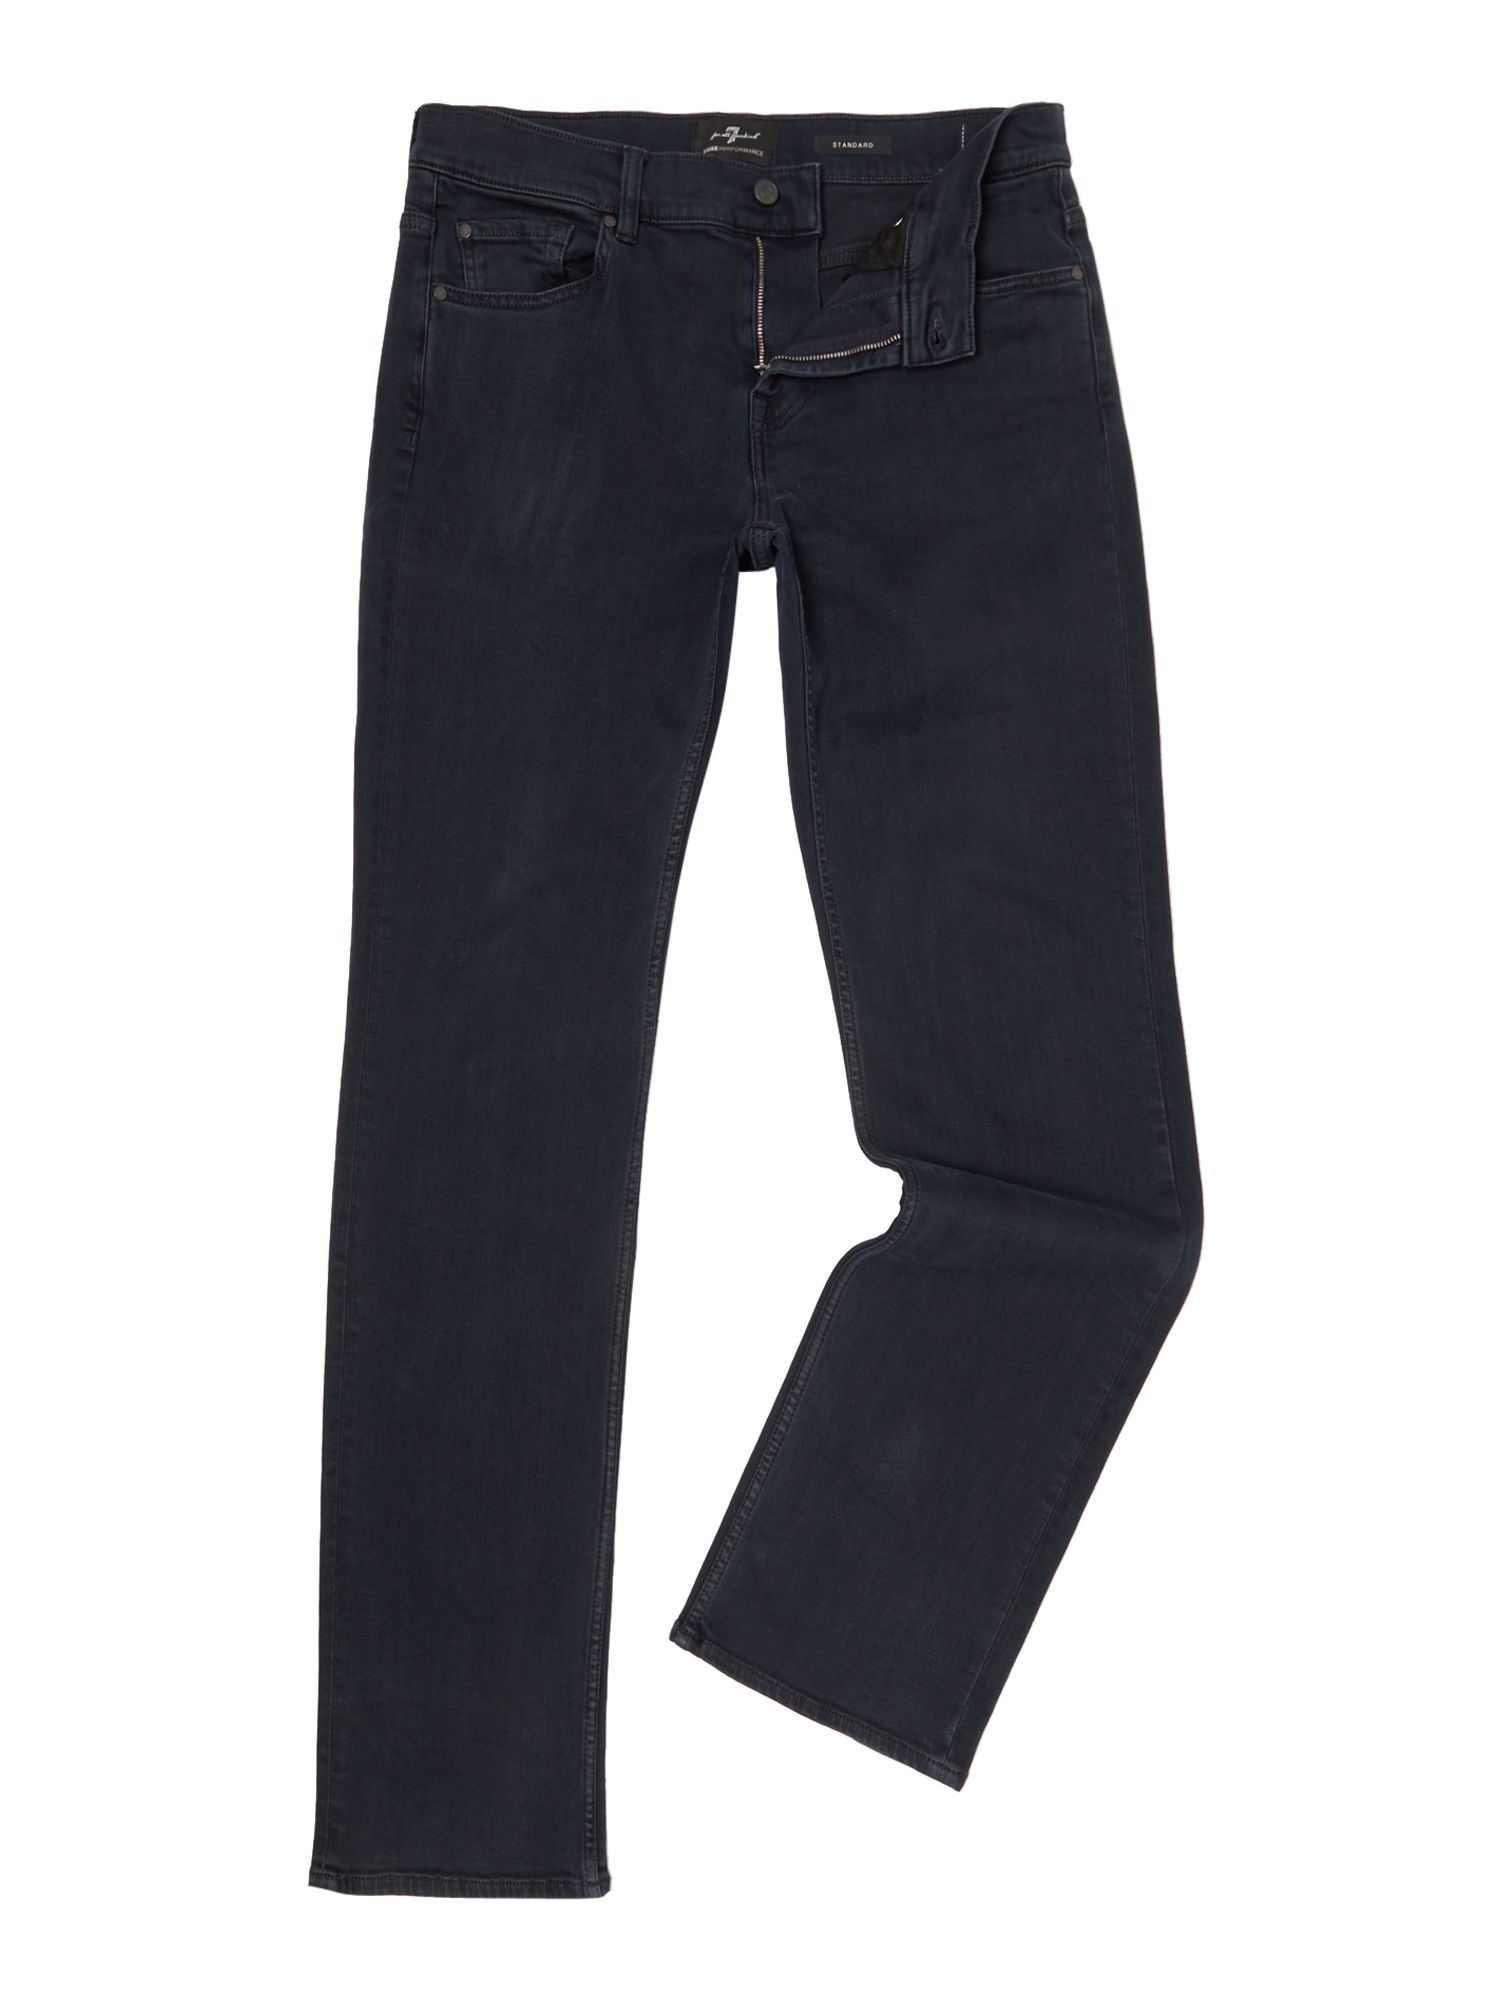 Mens Standard Fit Luxe Performance Jeans, Deep Blue